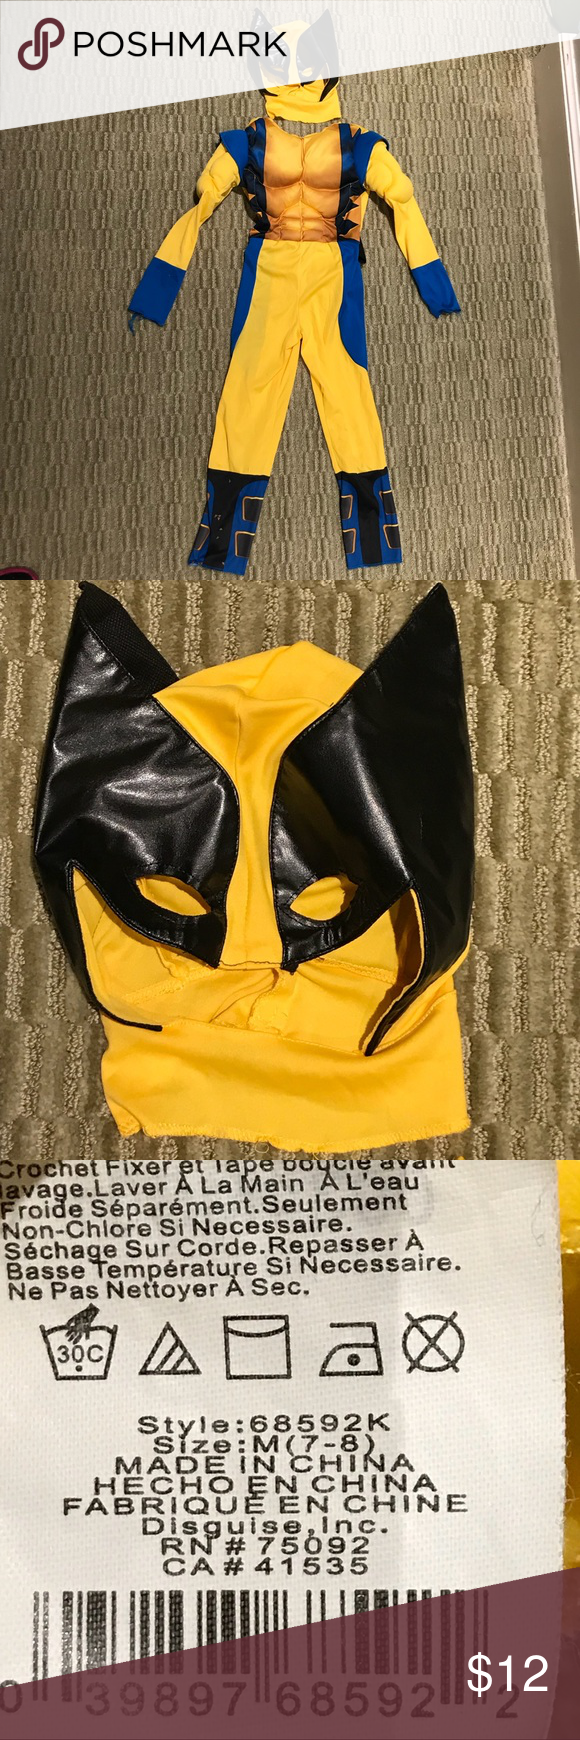 XMen Logan Wolverine Halloween Costume Previously loved